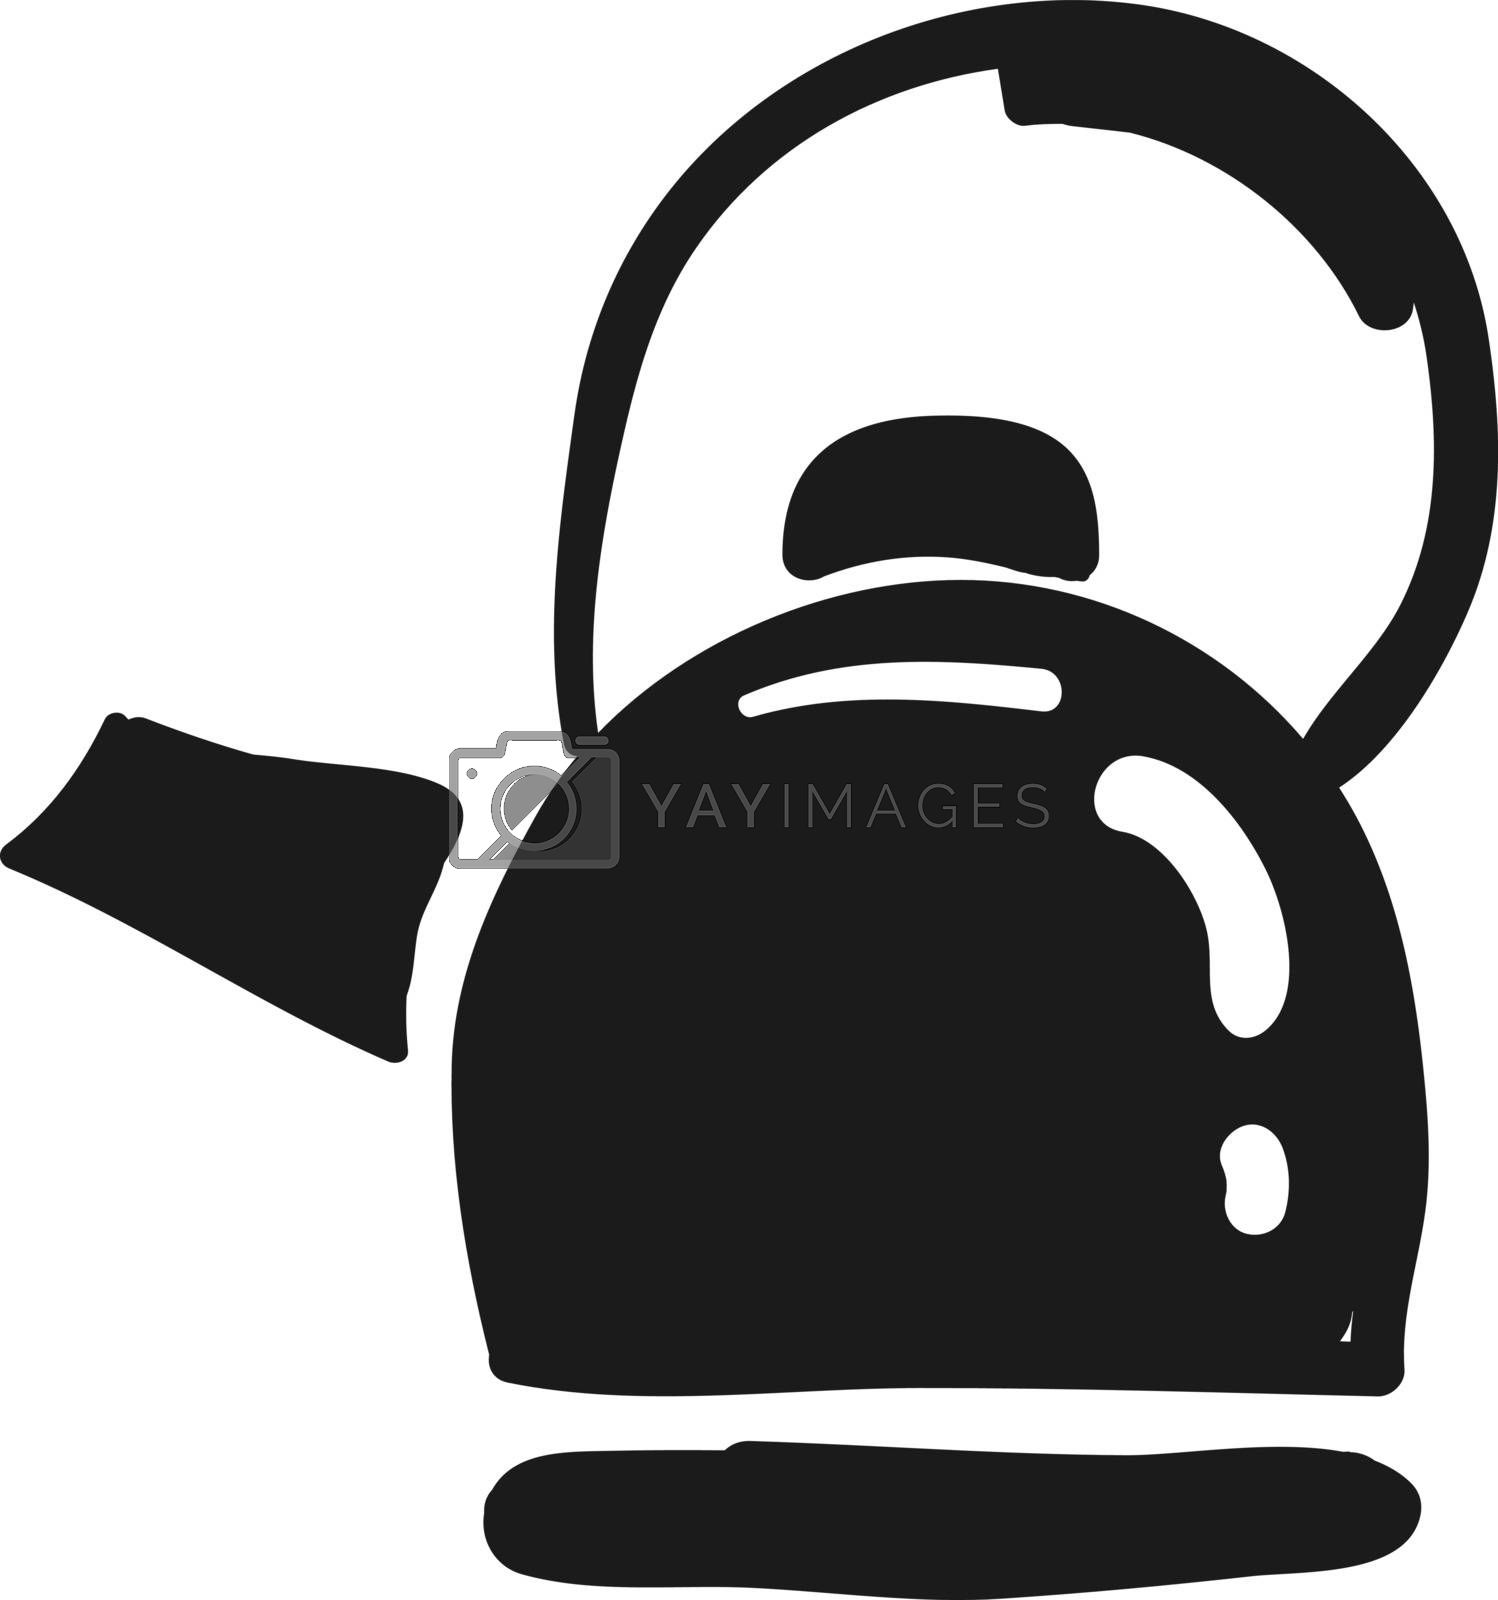 Royalty free image of Clipart of a clever black-colored teapot vector or color illustr by Morphart